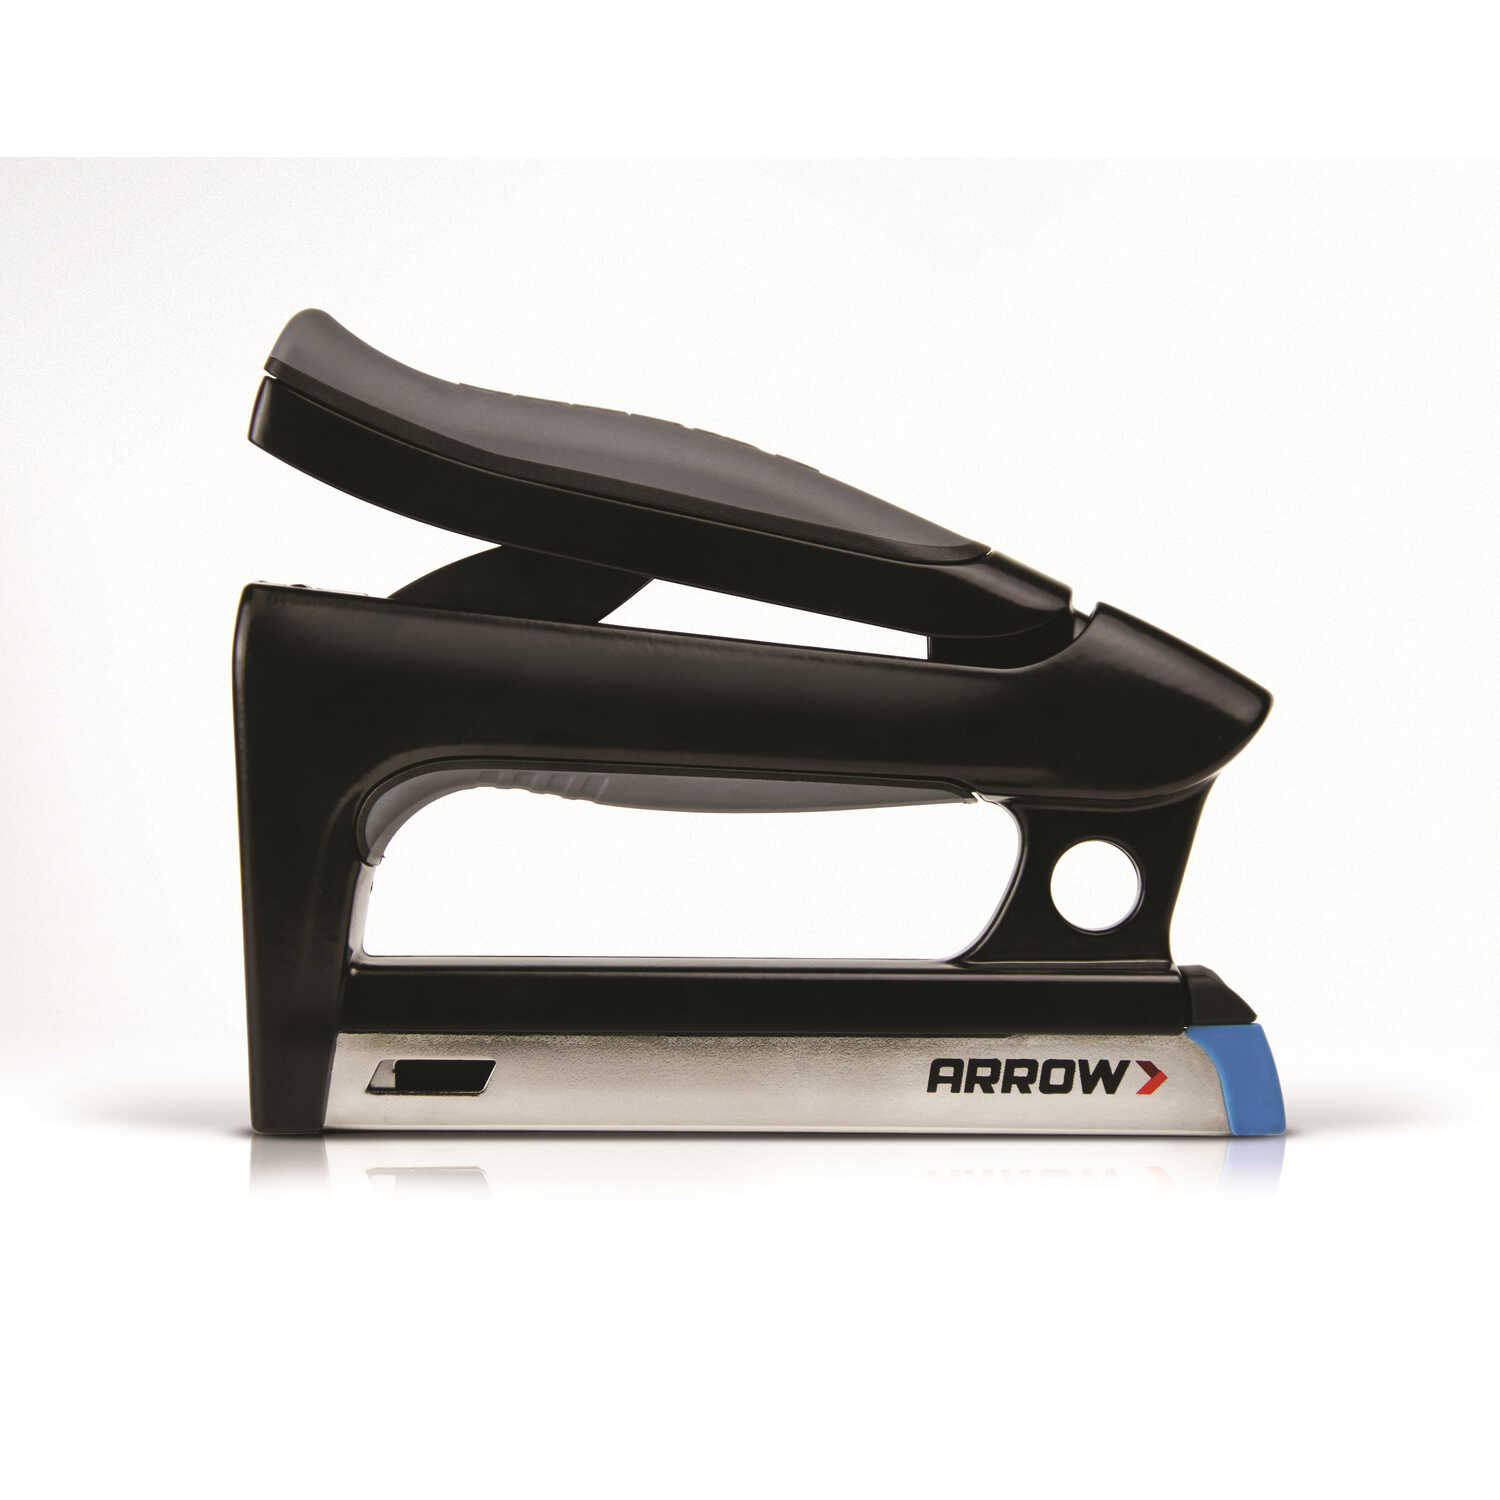 Arrow  PowerShot Advanced Forward Action  Flat  Staple Gun  Black